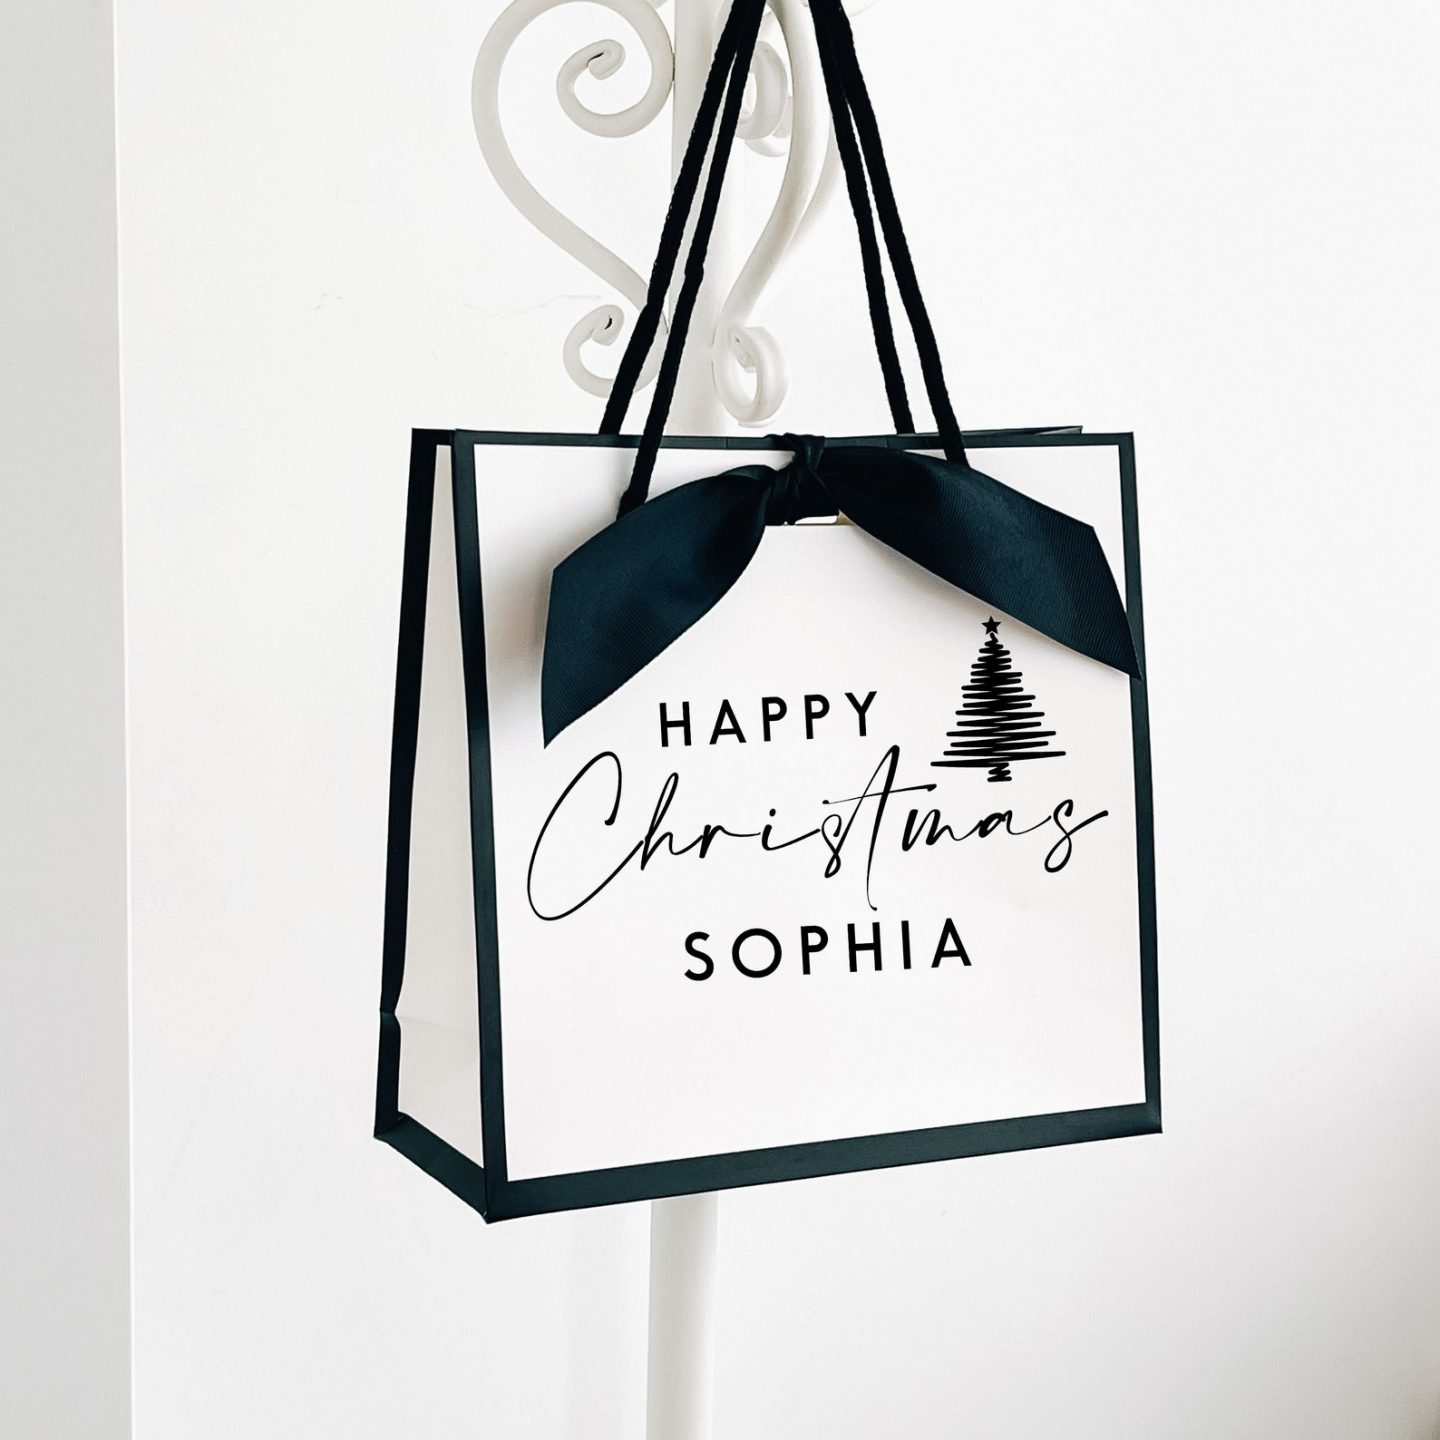 Chanel Inspired personalized Gift Bag